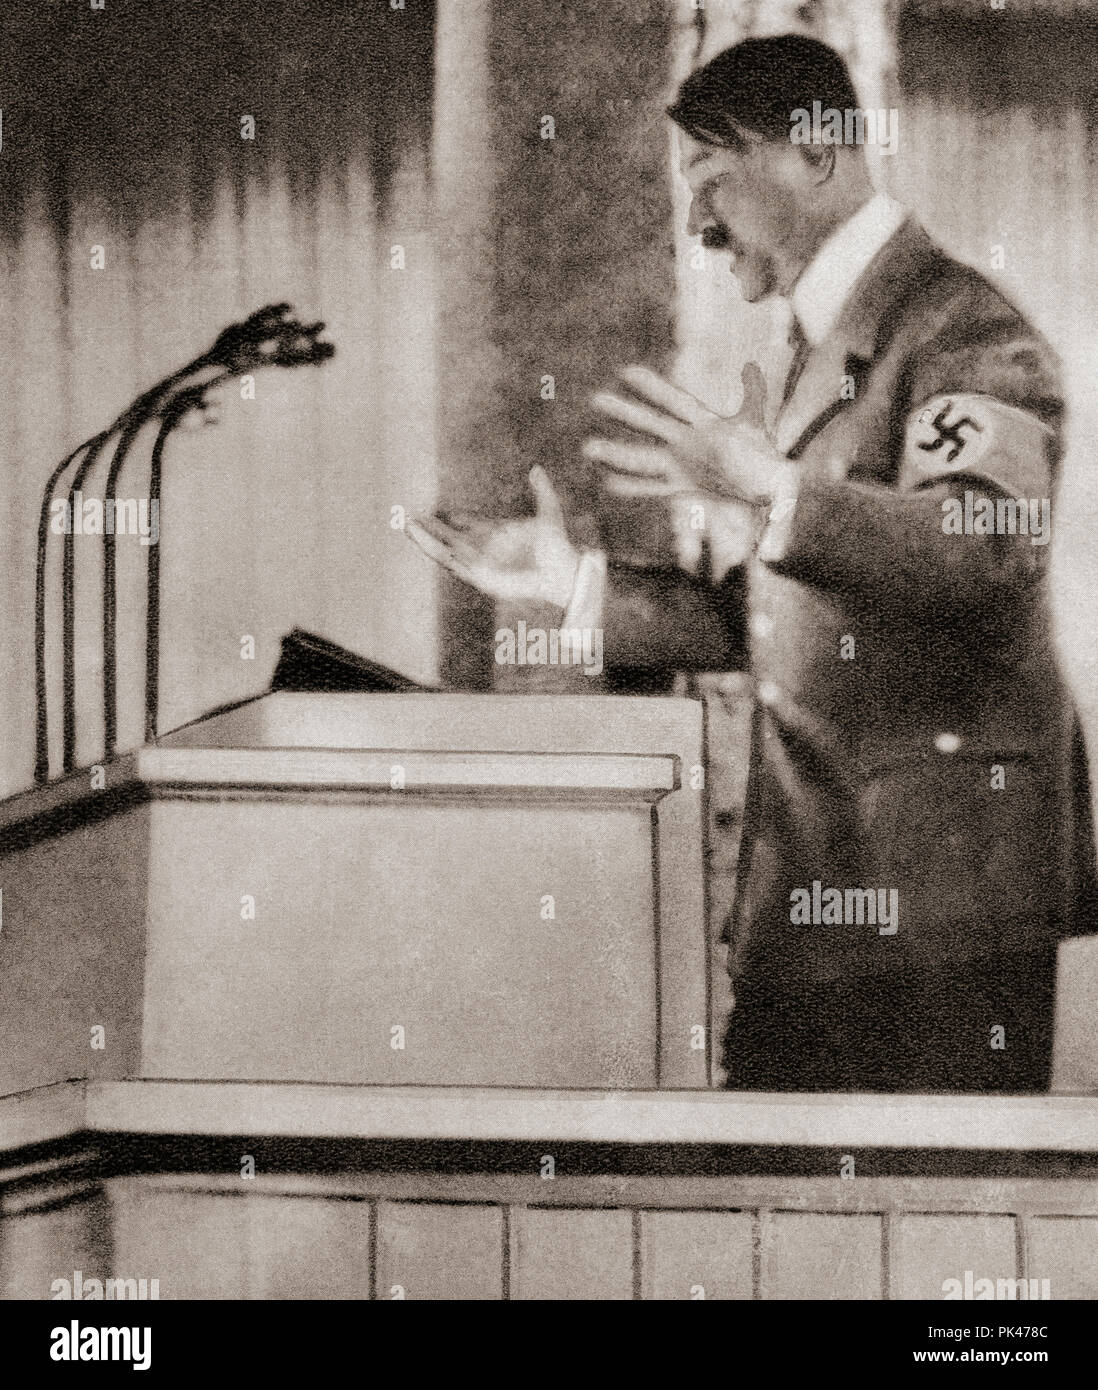 Adolph Hitler's speech at the Nuremberg rally, September 12, 1938 declaring that the oppression of Sudeten Germans must end.  Adolf Hitler,1889 – 1945. German politician, demagogue, Pan-German revolutionary, leader of the Nazi Party, Chancellor of Germany, and Führer of Nazi Germany from 1934 to 1945.  From These Tremendous Years, published 1938. - Stock Image